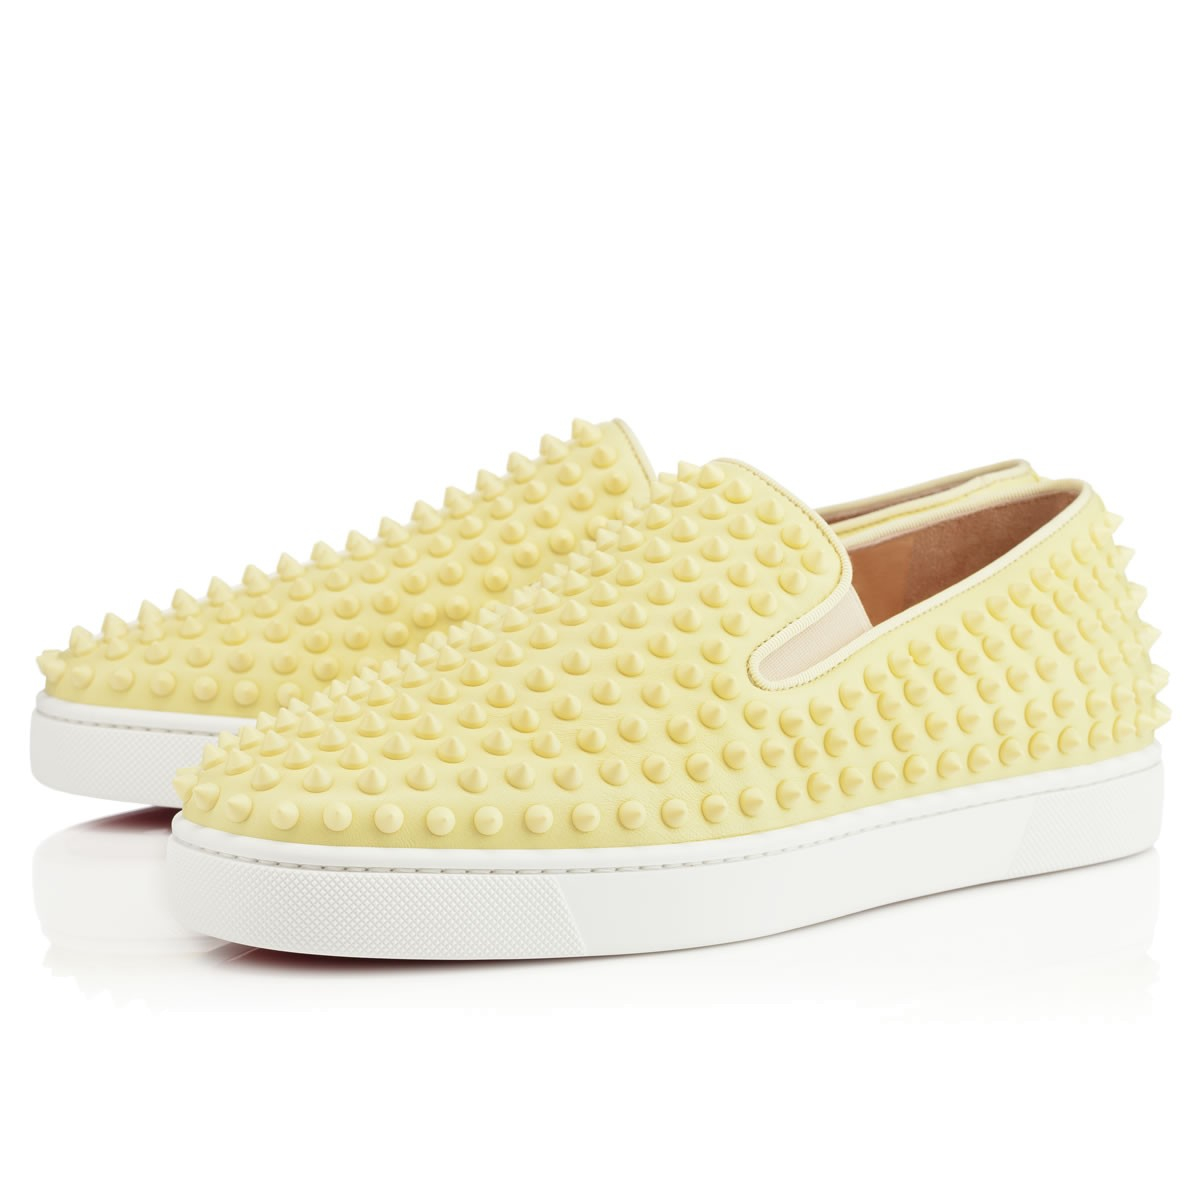 db0a6a49bd7 Lyst - Christian Louboutin Rollerboat Mens Flat in Yellow for Men